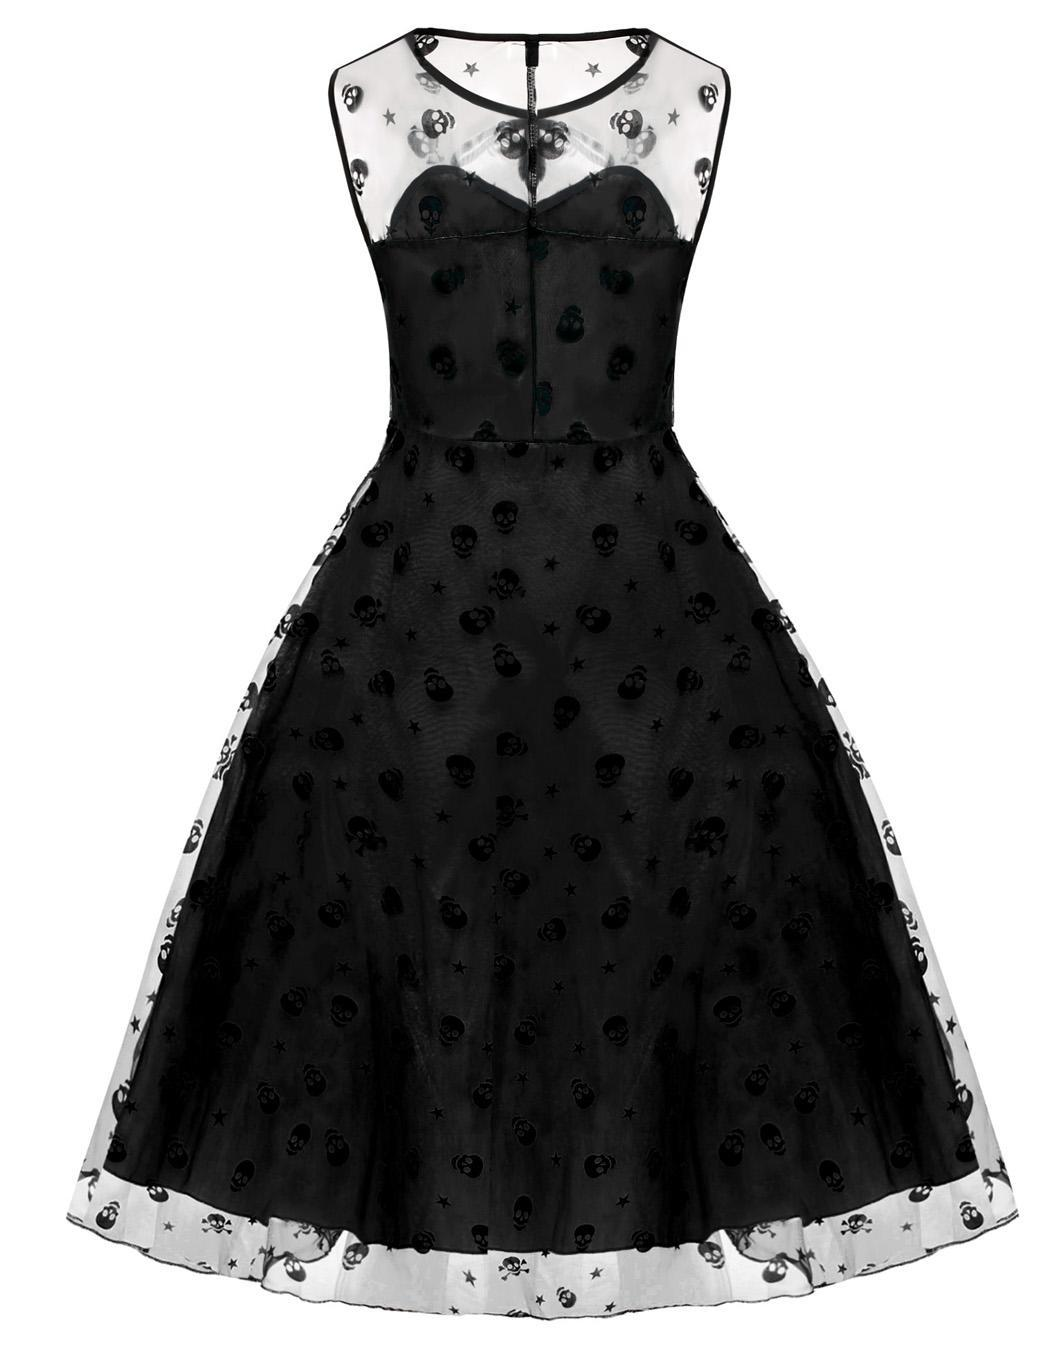 Retro Women Vintage Style Sleeveless Mesh Embroidery Long Party Cocktail Dress 4